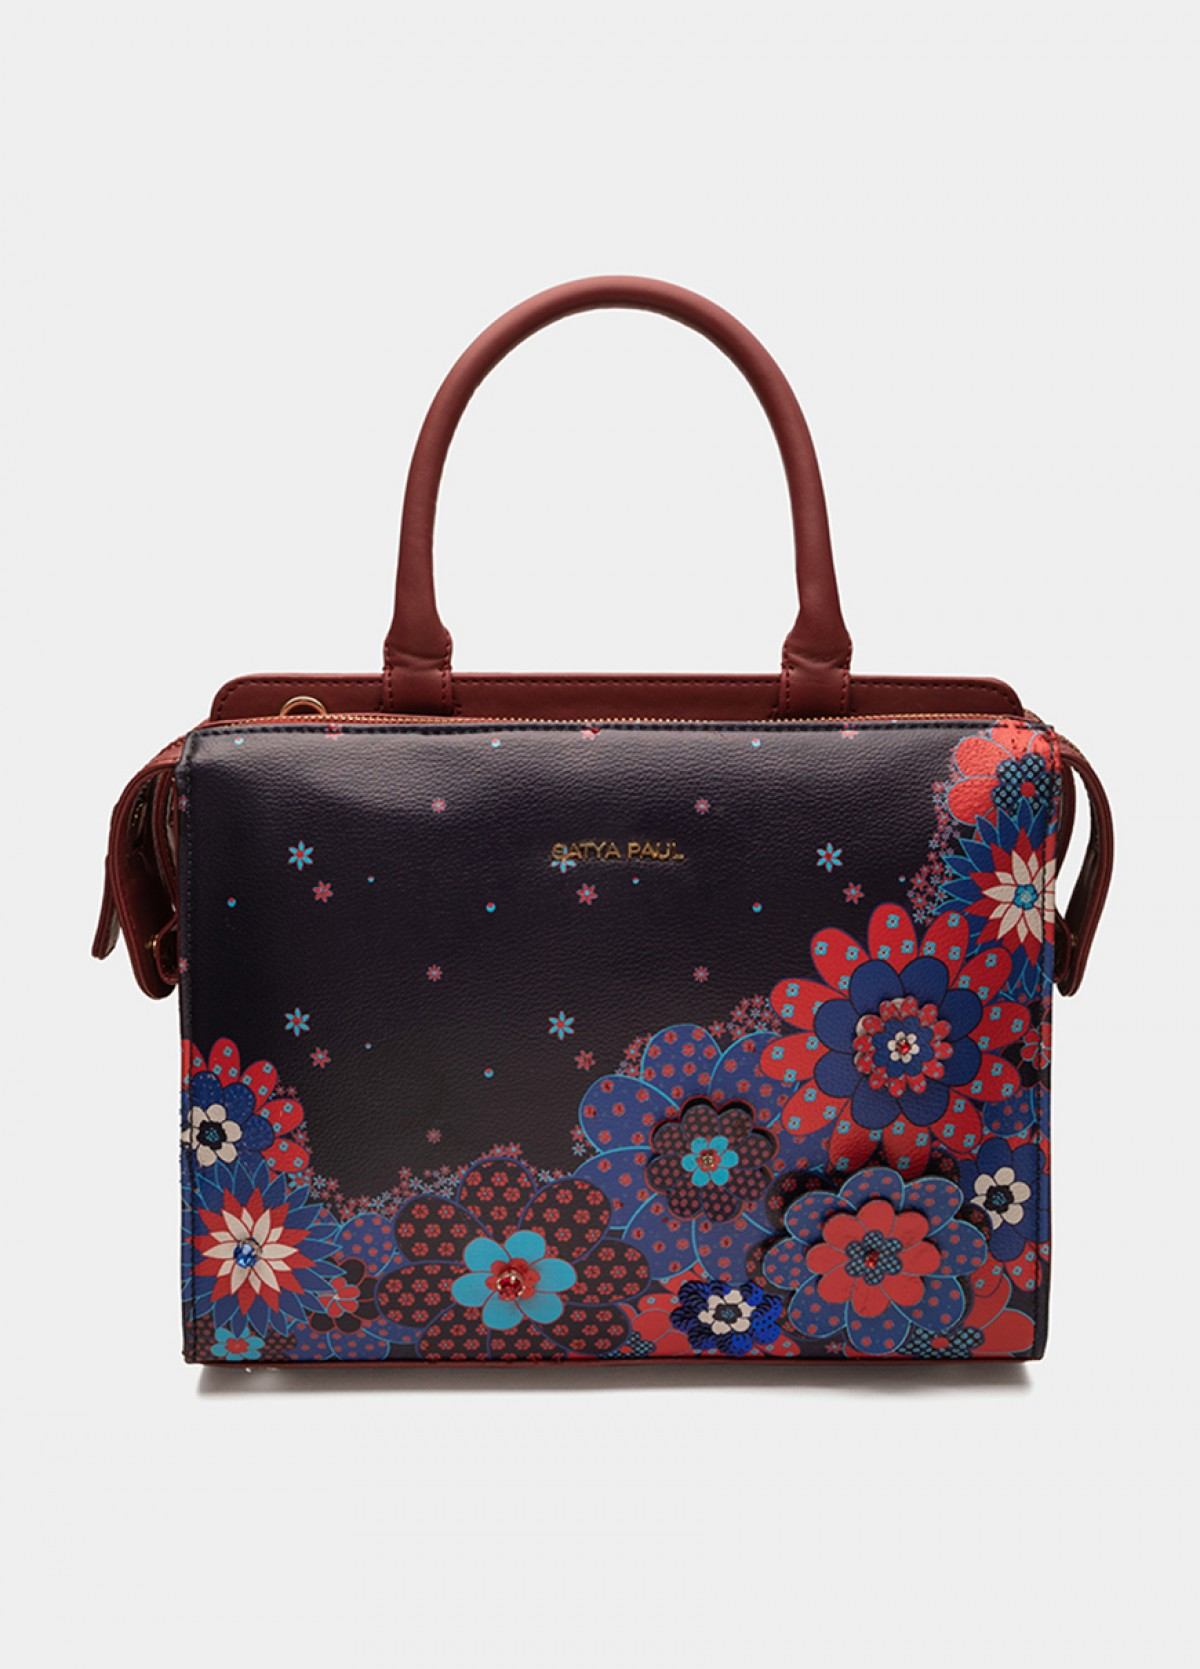 The Valley of Flowers Satchel Bag